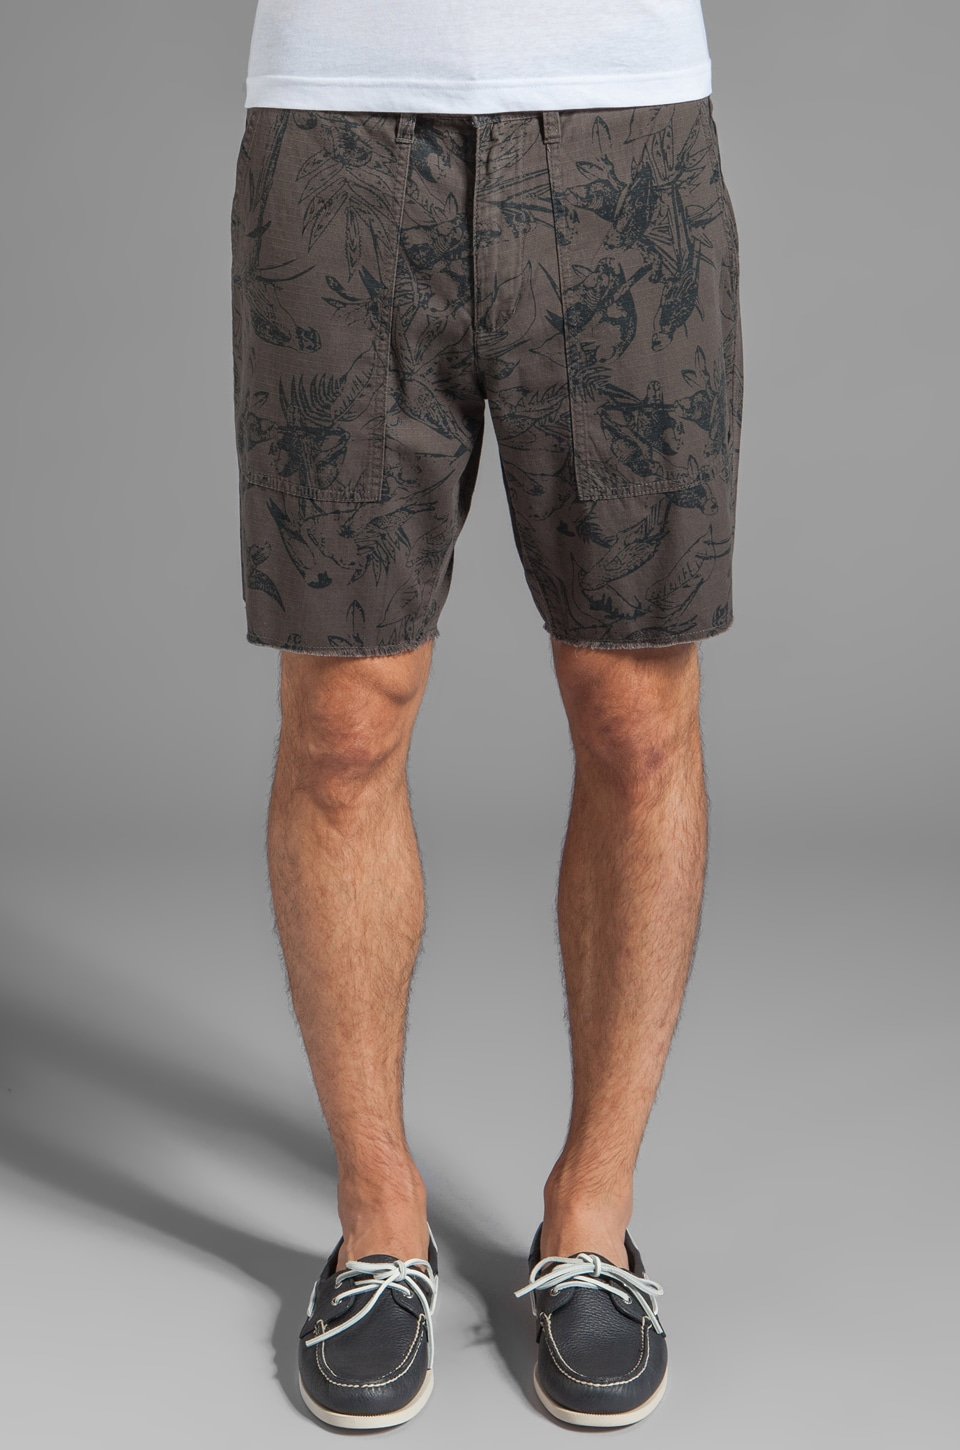 RVCA Hot Tropics Short in Dark Charcoal